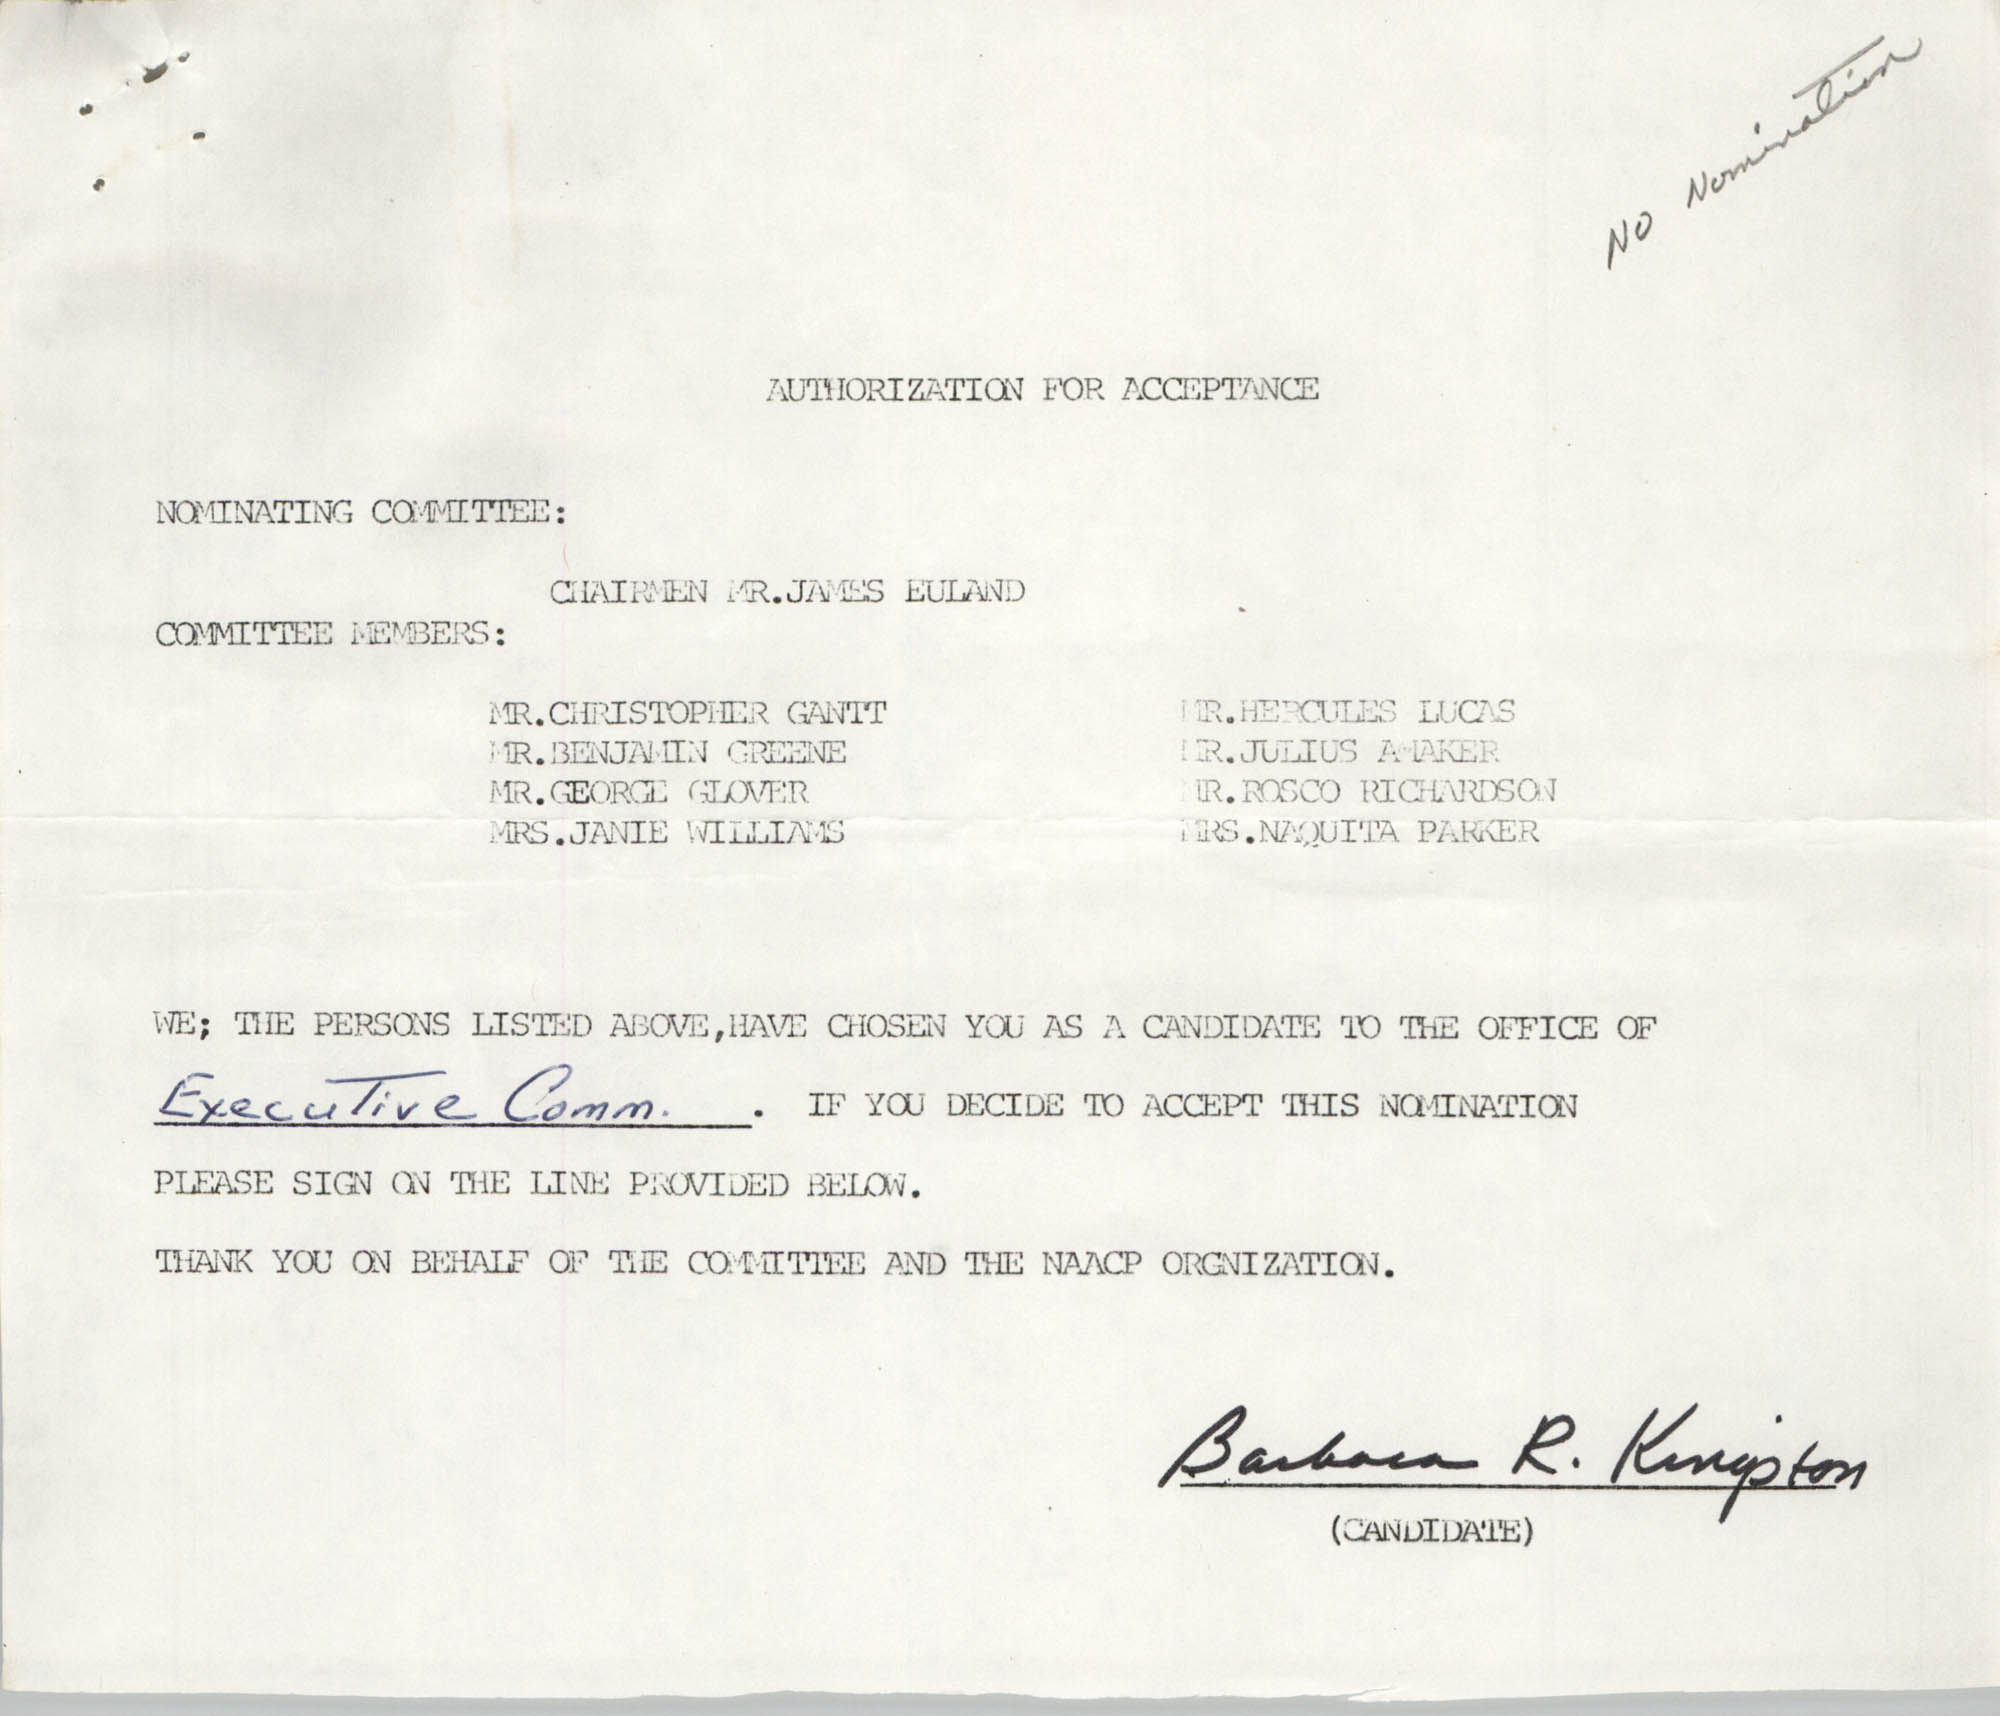 Charleston Branch of the NAACP Election Materials, Authorization for Acceptance for Barbara R. Kingston